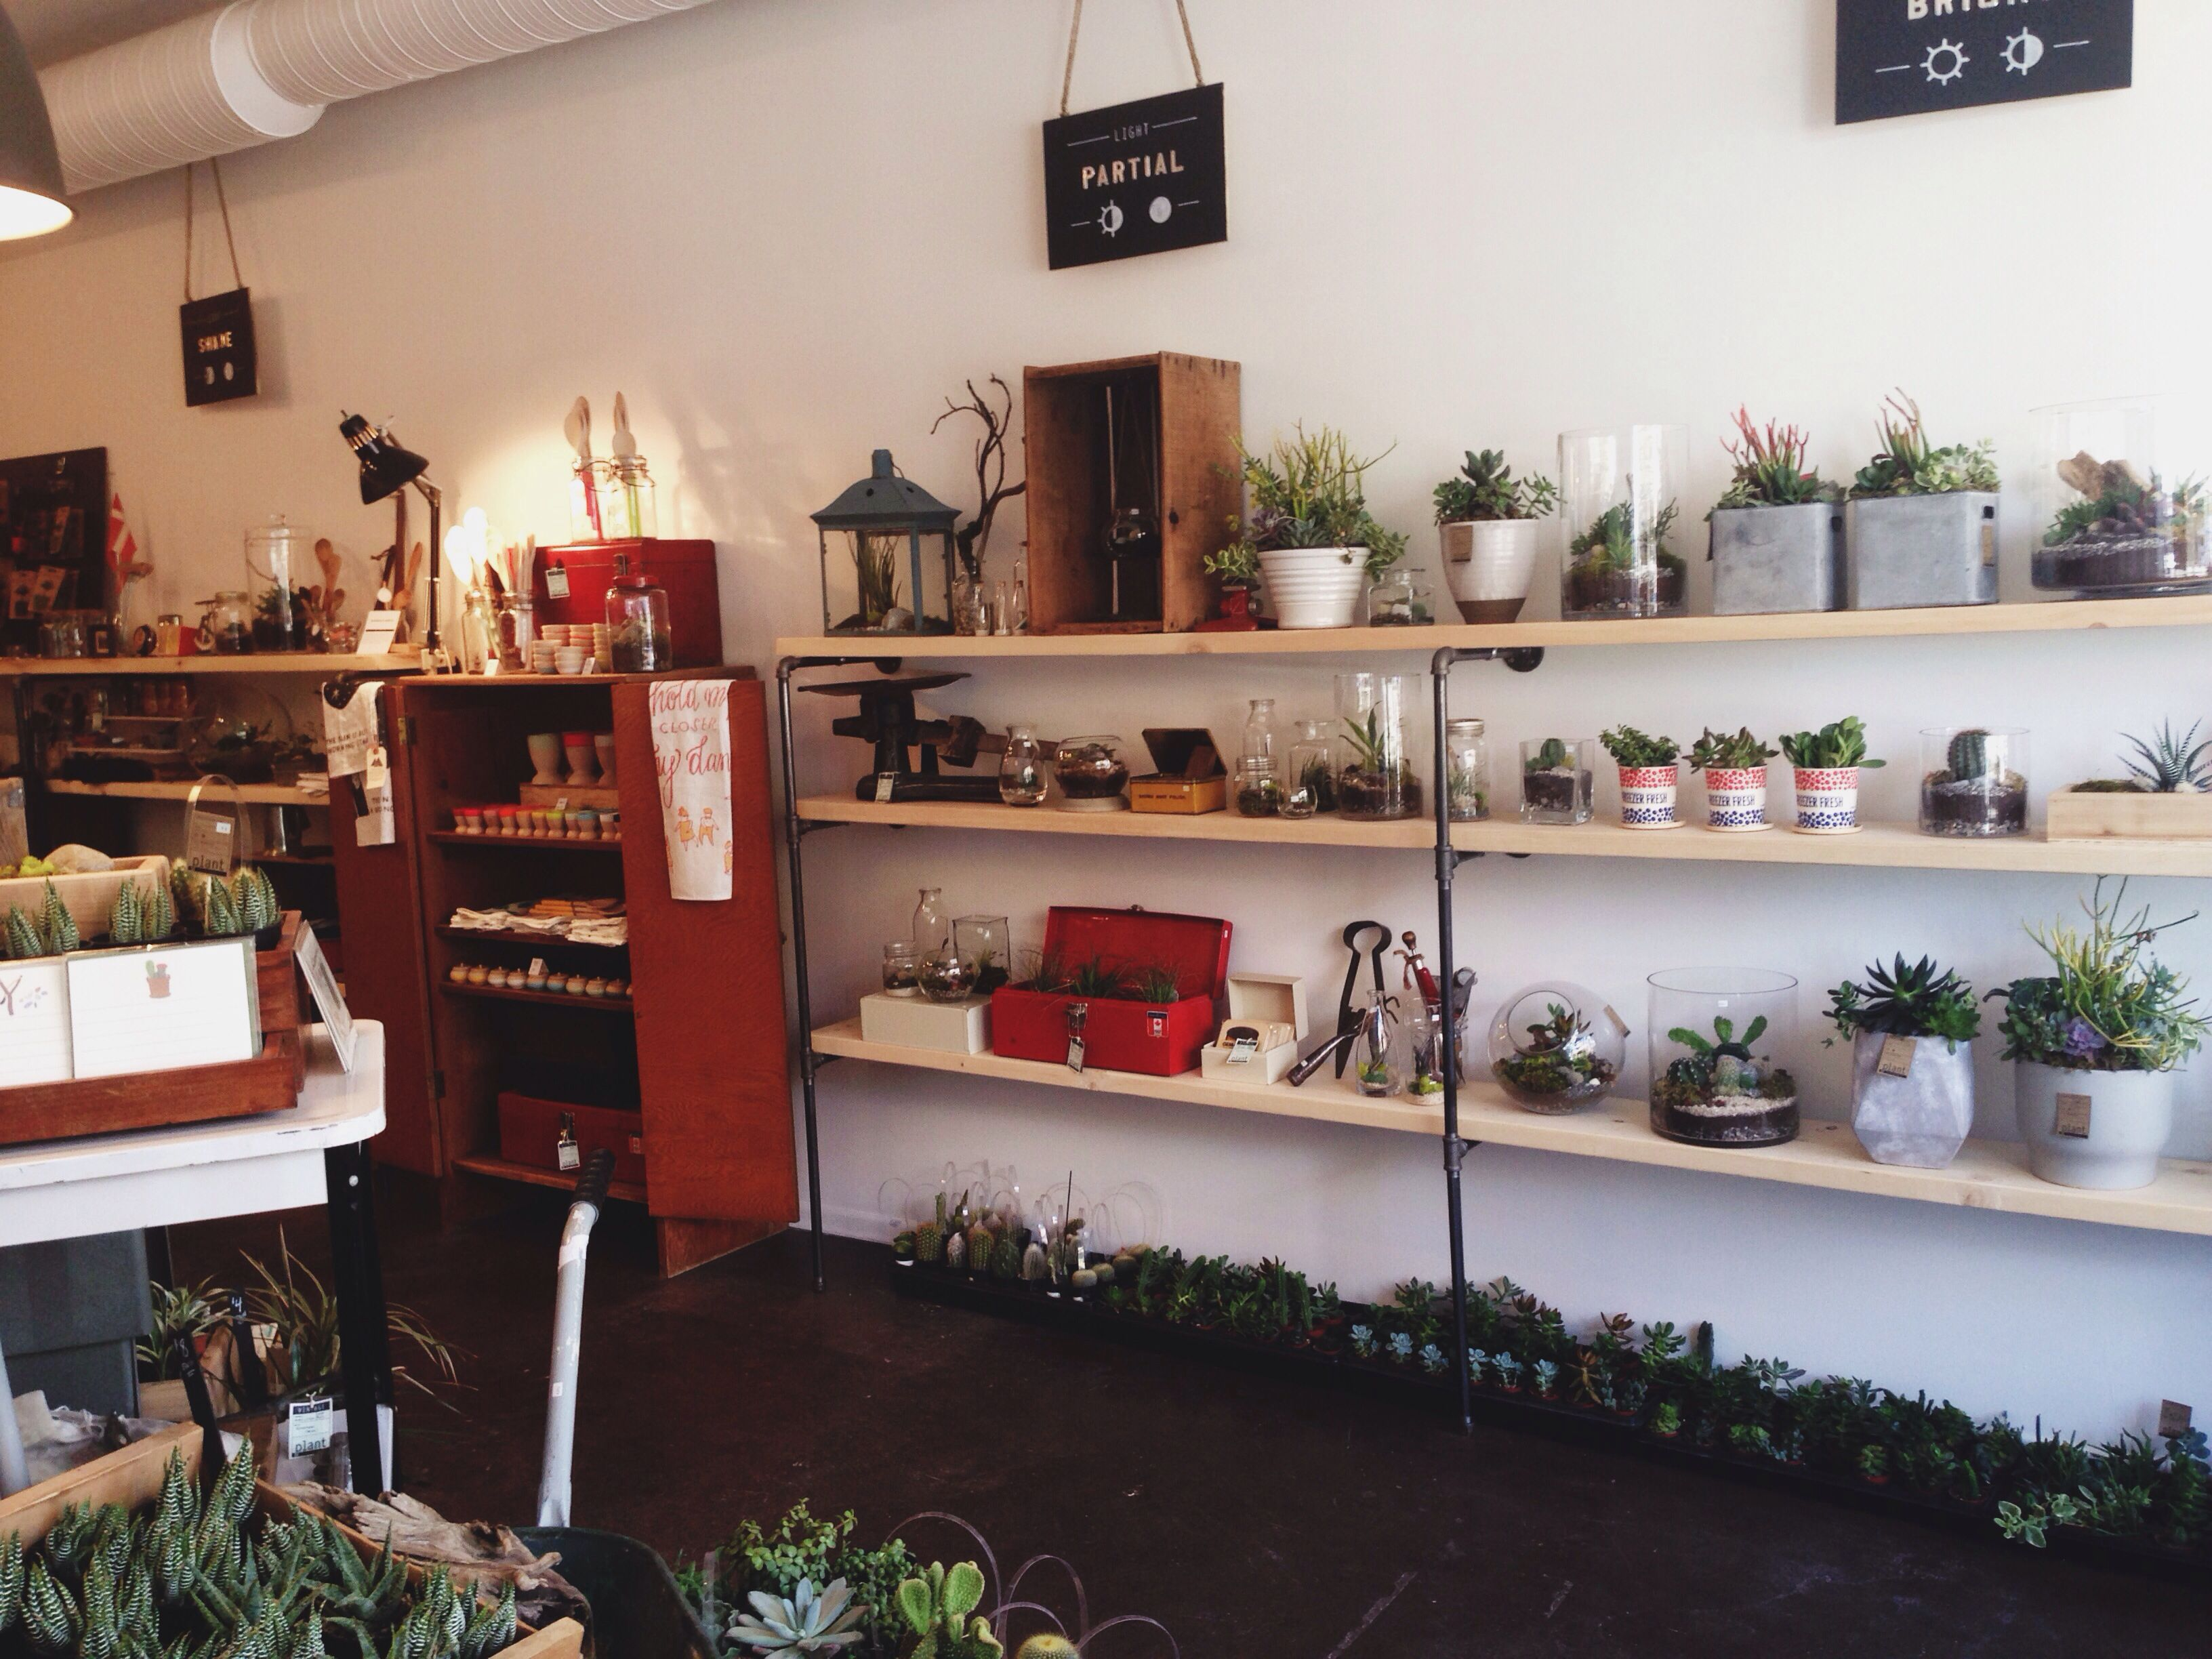 PLANT terrariums shop in Inglewood, Calgary photo by